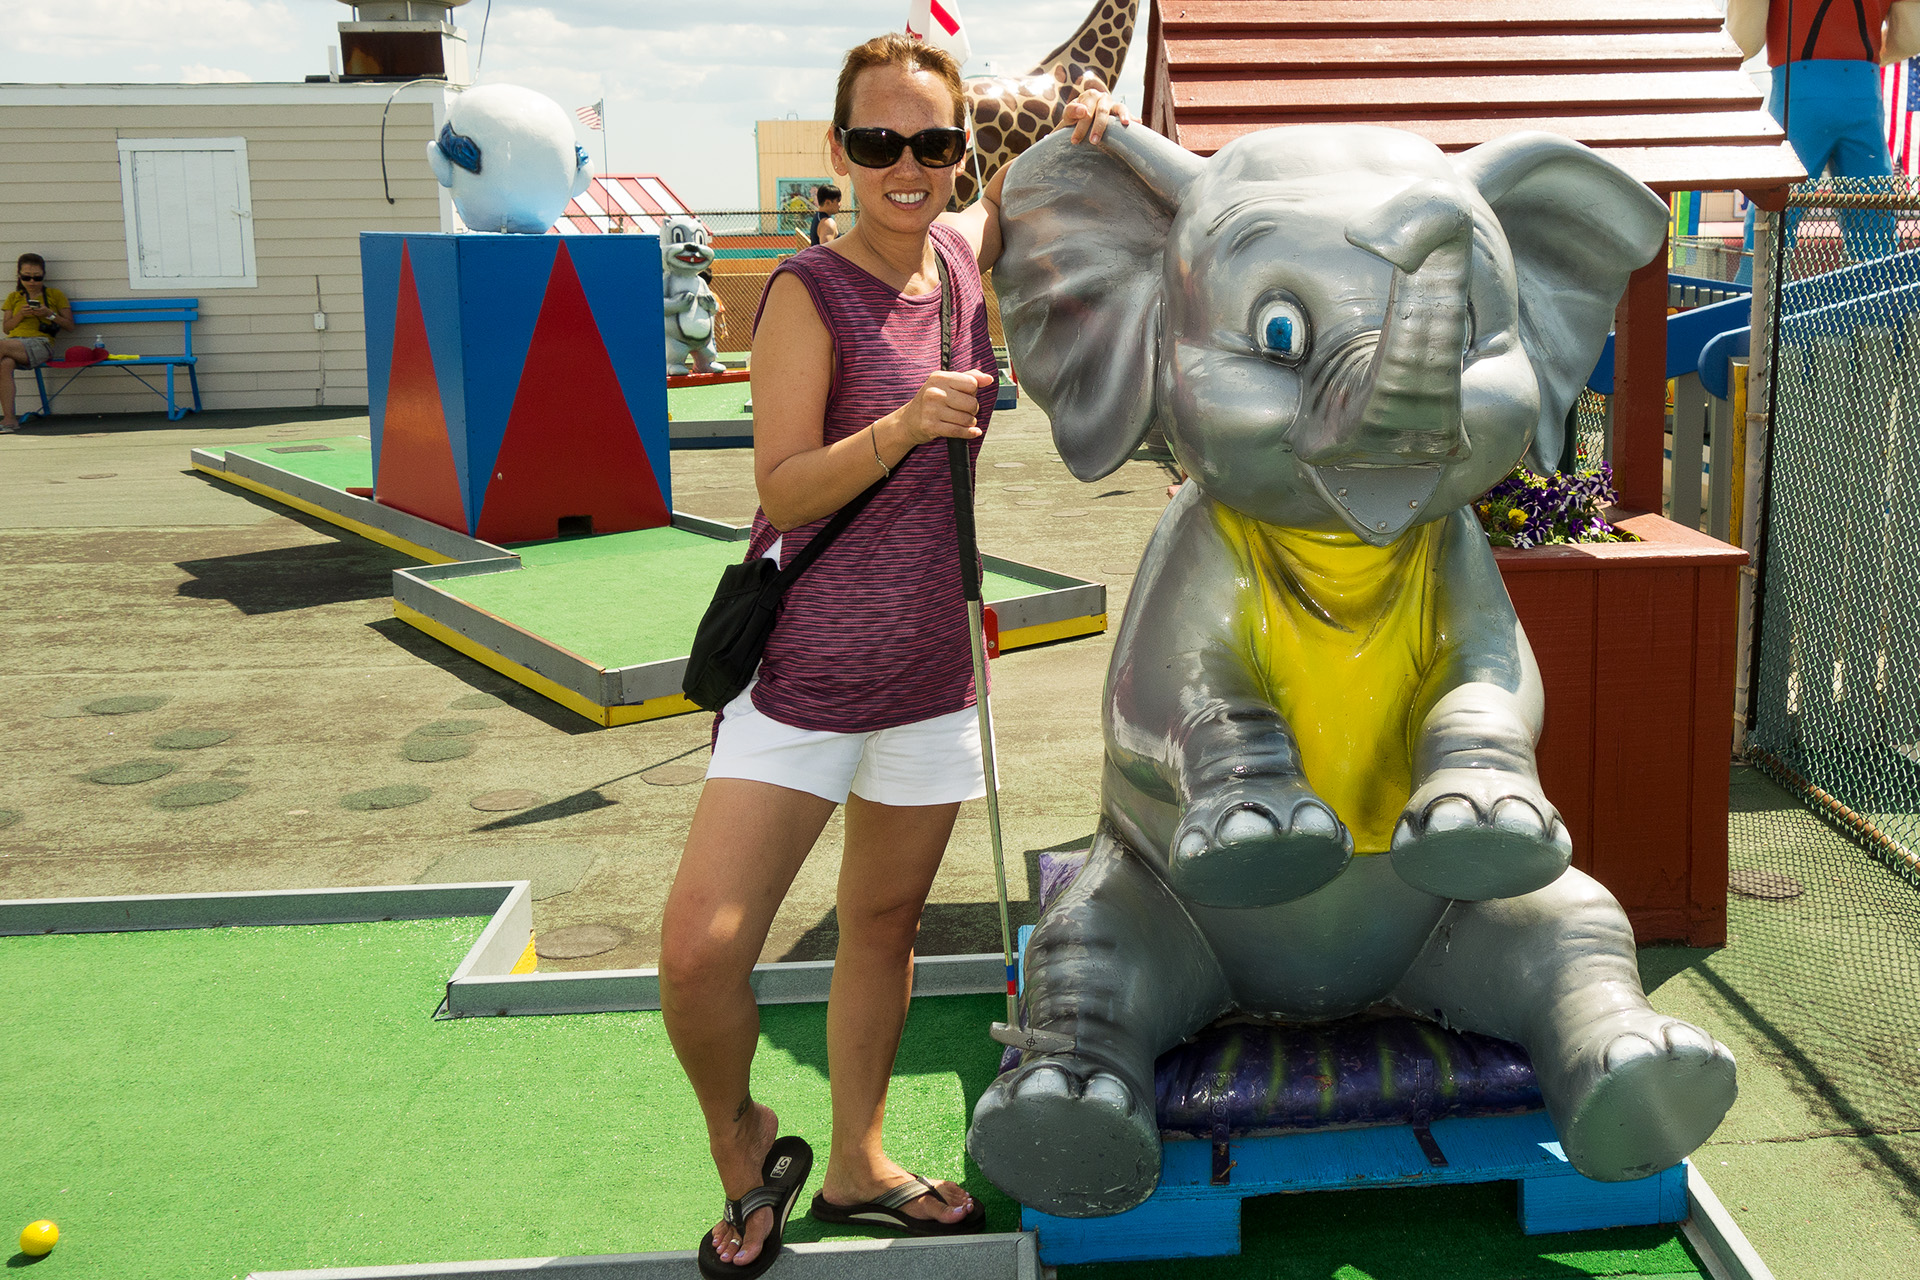 Glinda taking a quick break from beating me to pose with the elephant.